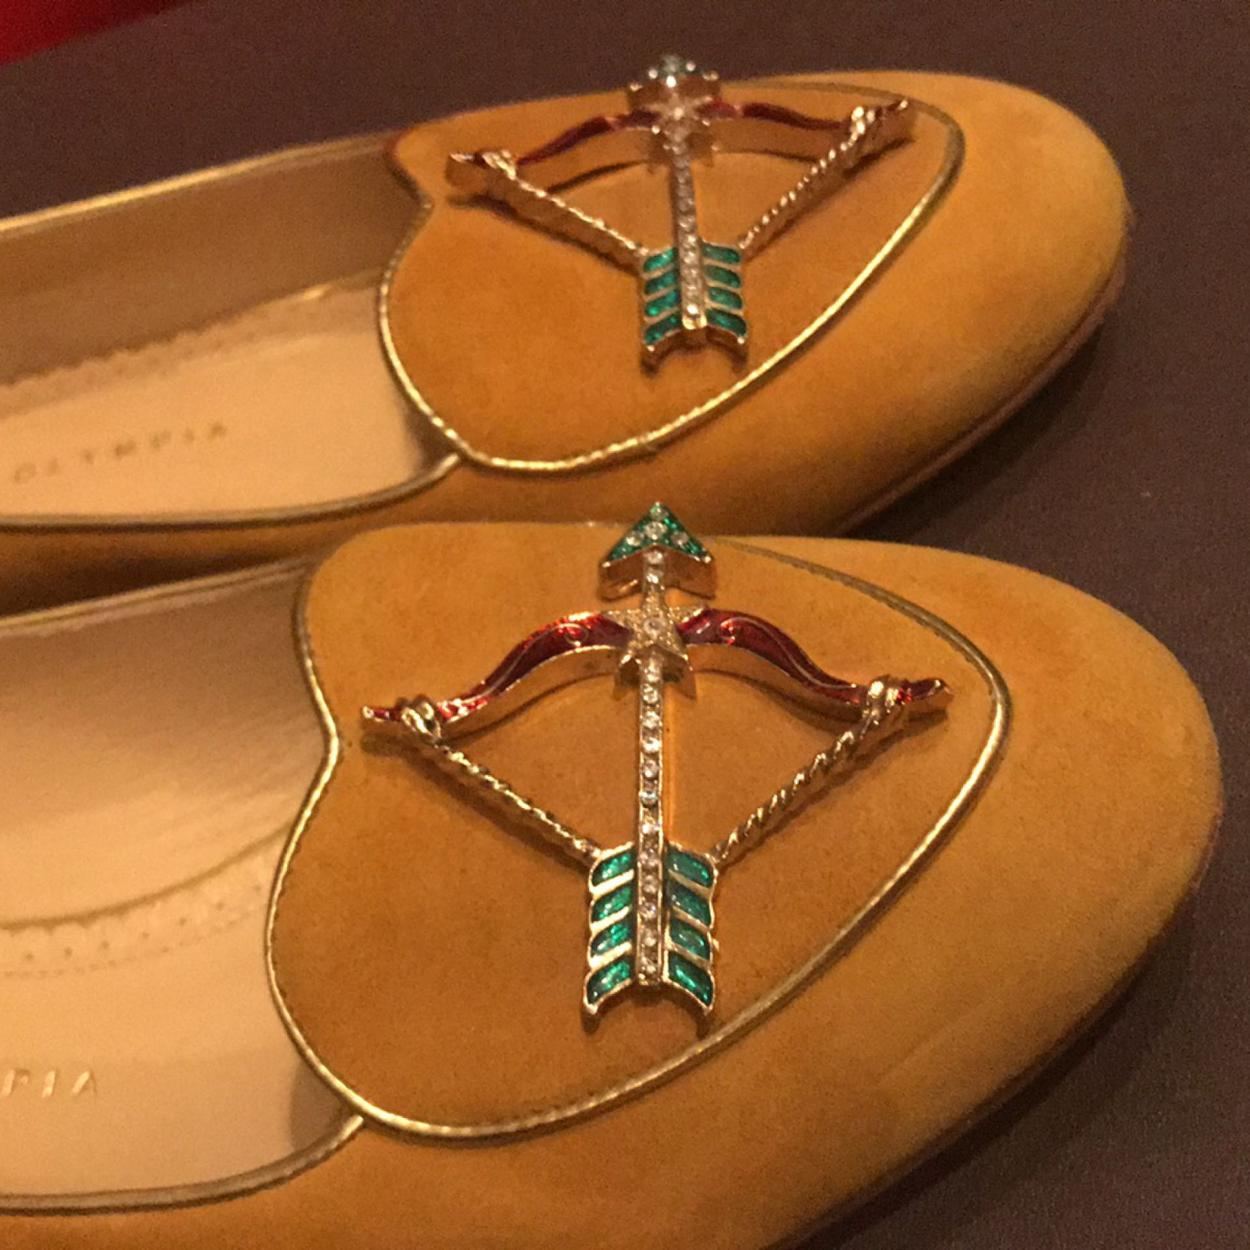 Charlotte Olympia Babet